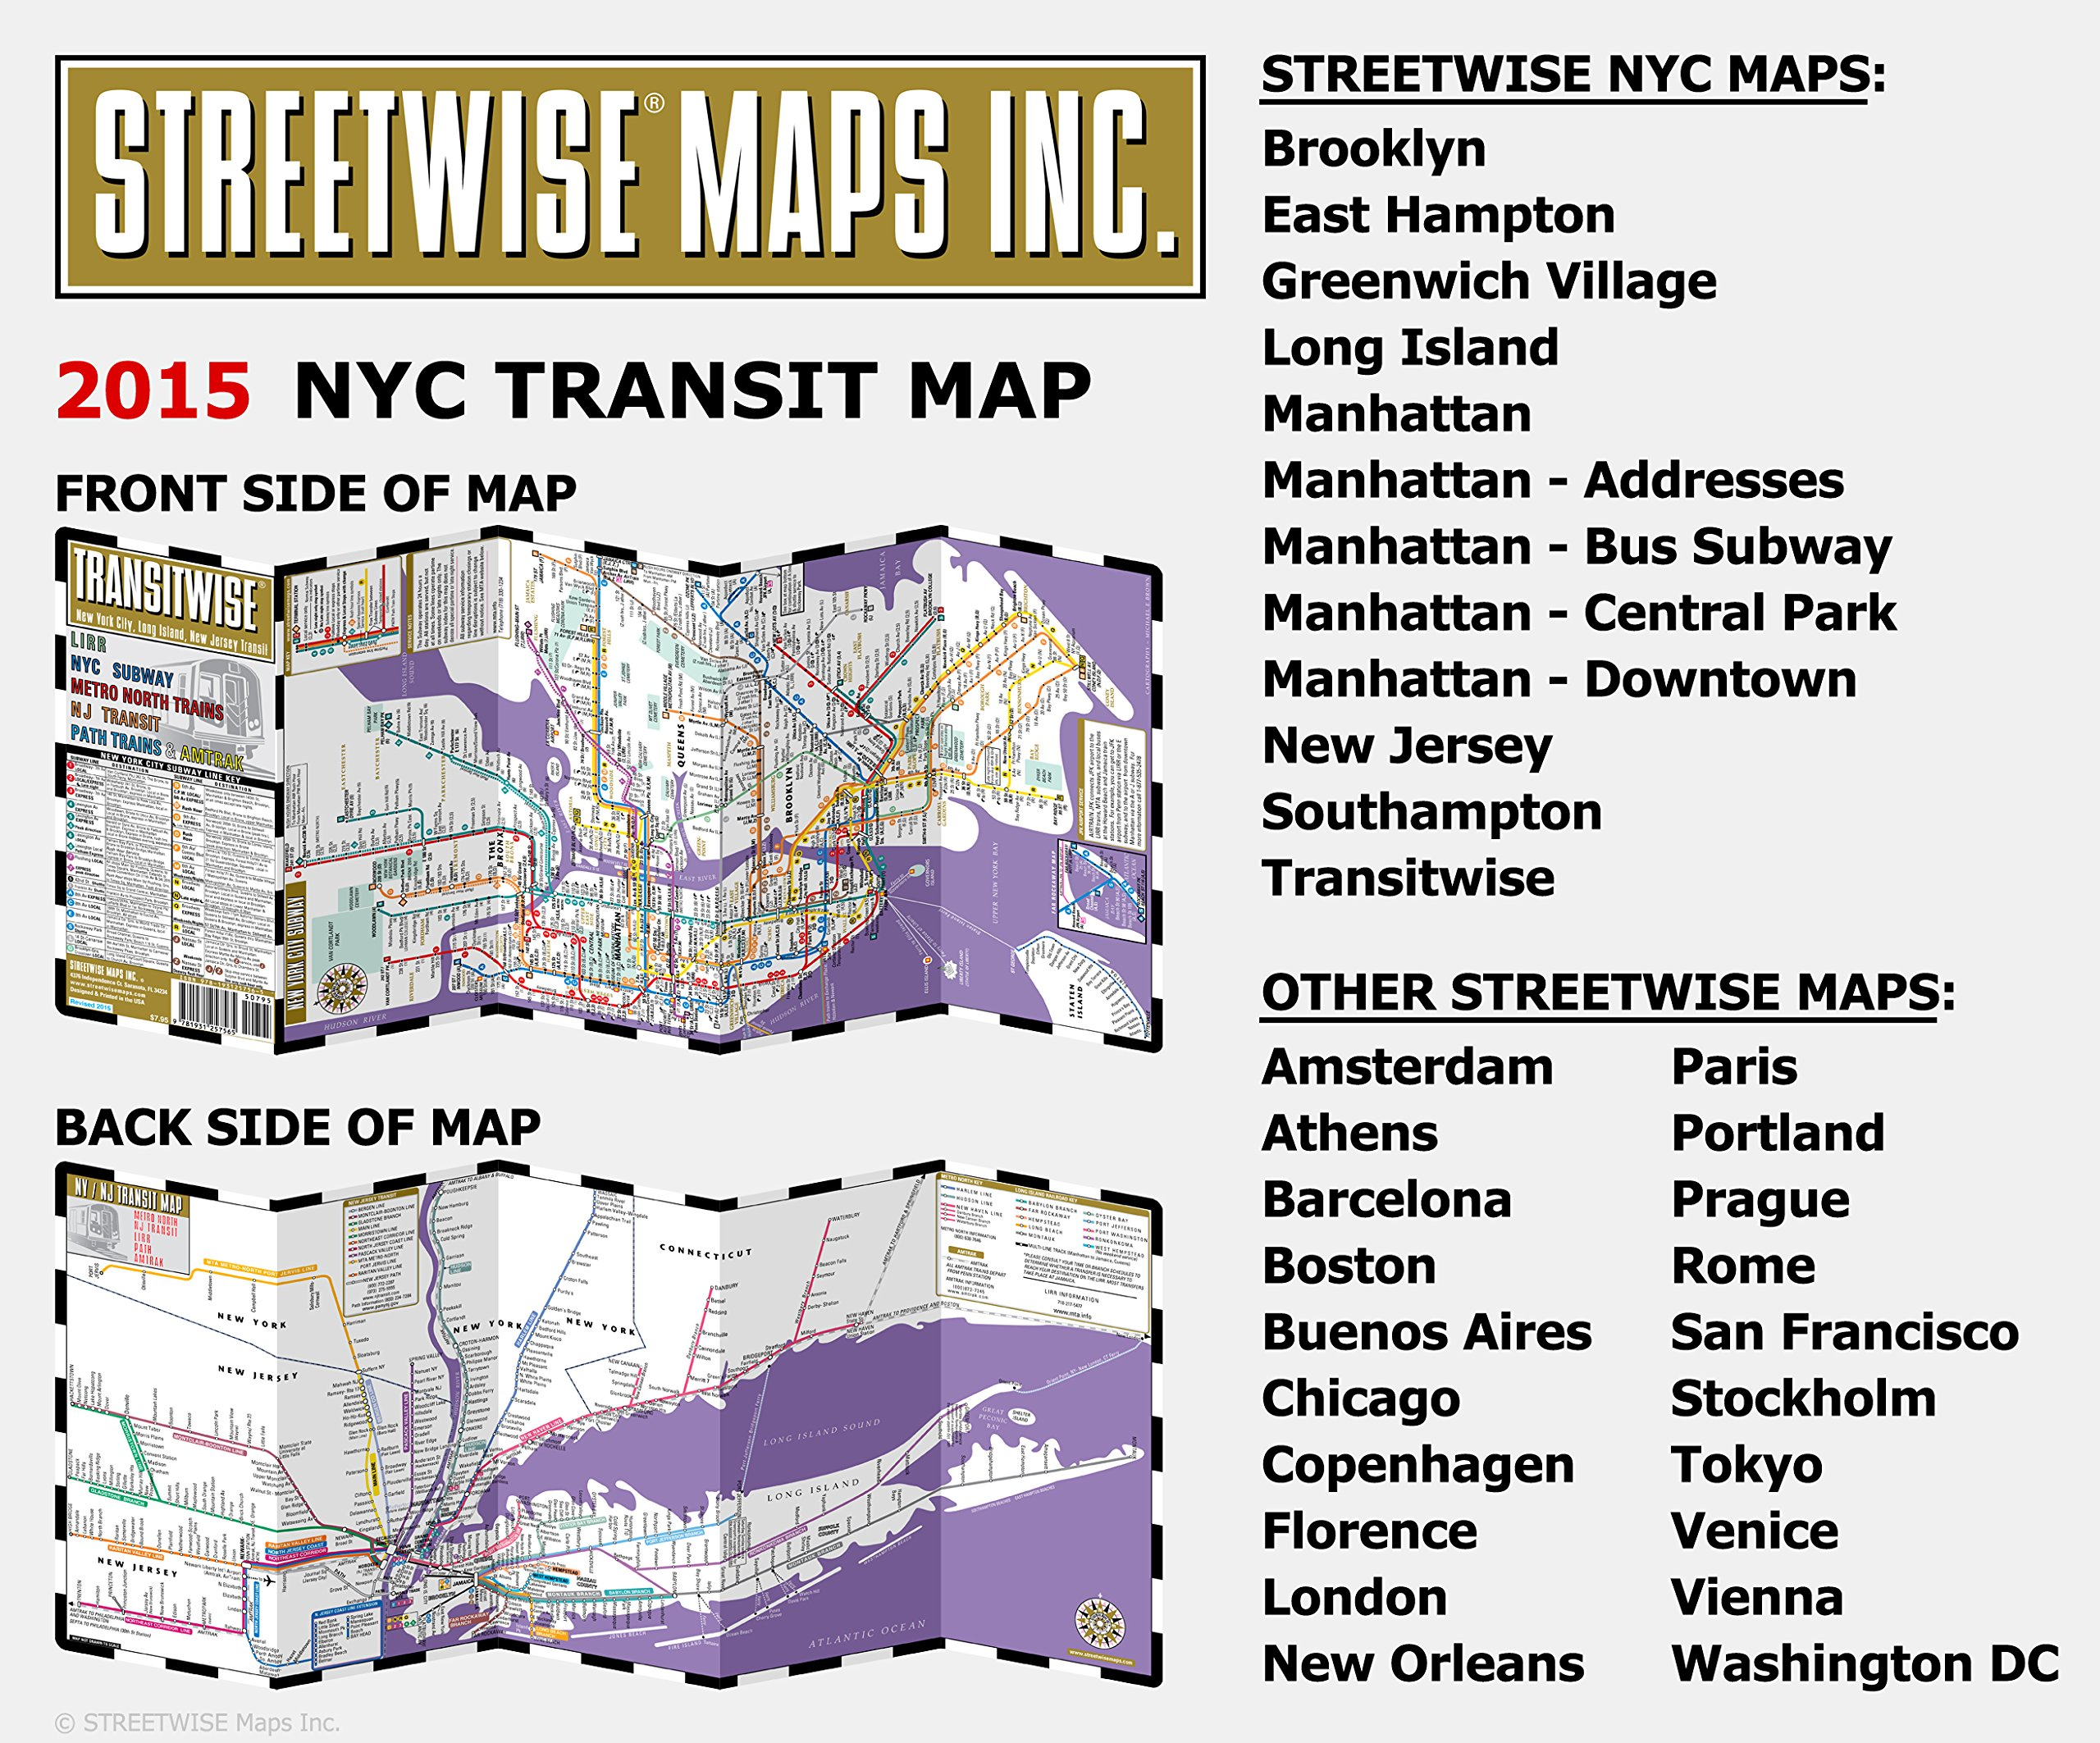 Subway Map Nyc Nj.Streetwise Transitwise New York City Subway Map Manhattan Subway